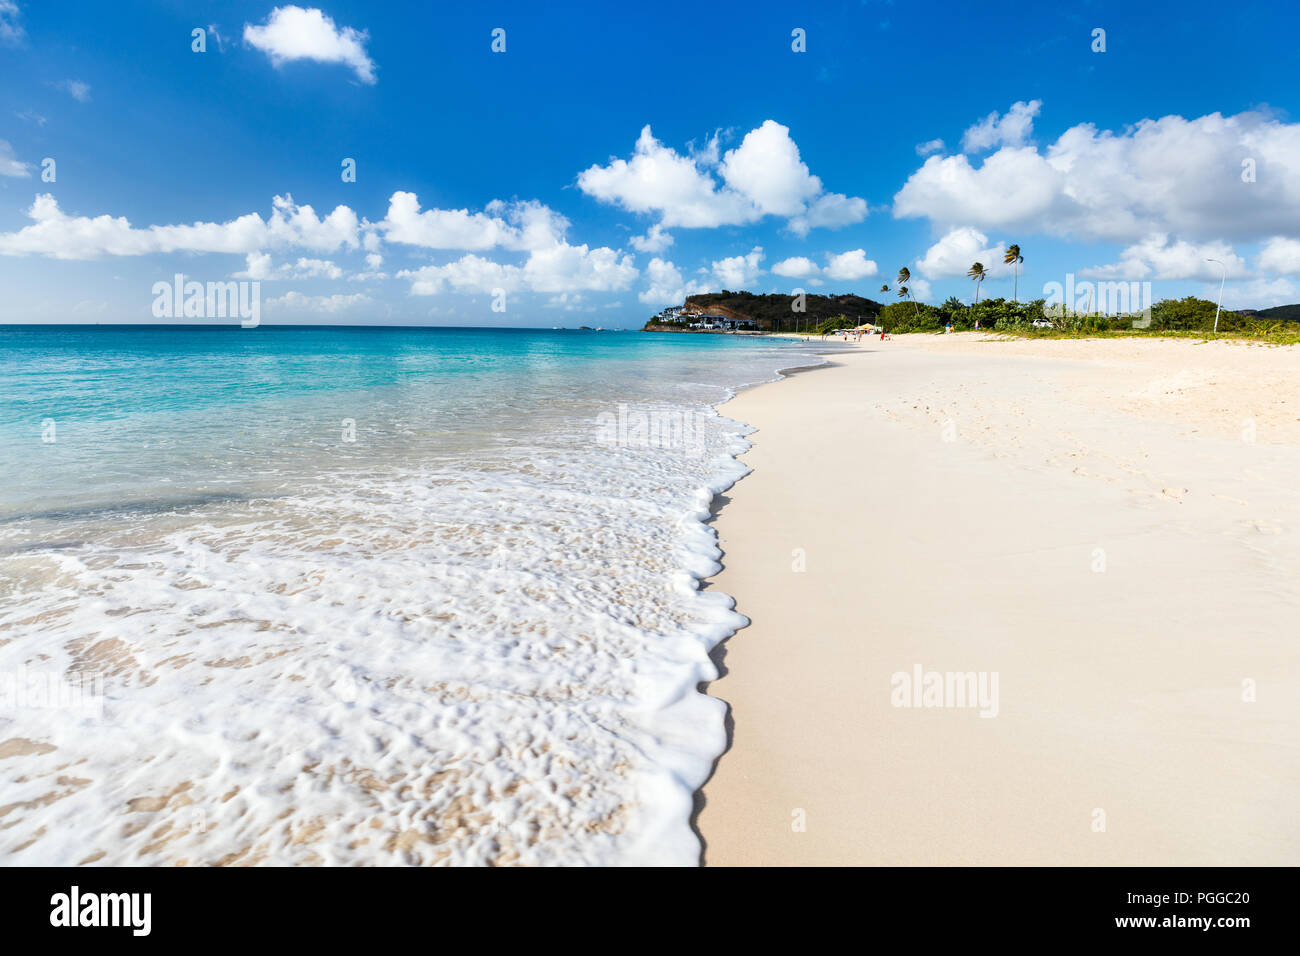 Idyllic tropical Darkwood beach at Antigua island in Caribbean with white sand, turquoise ocean water and blue sky Stock Photo